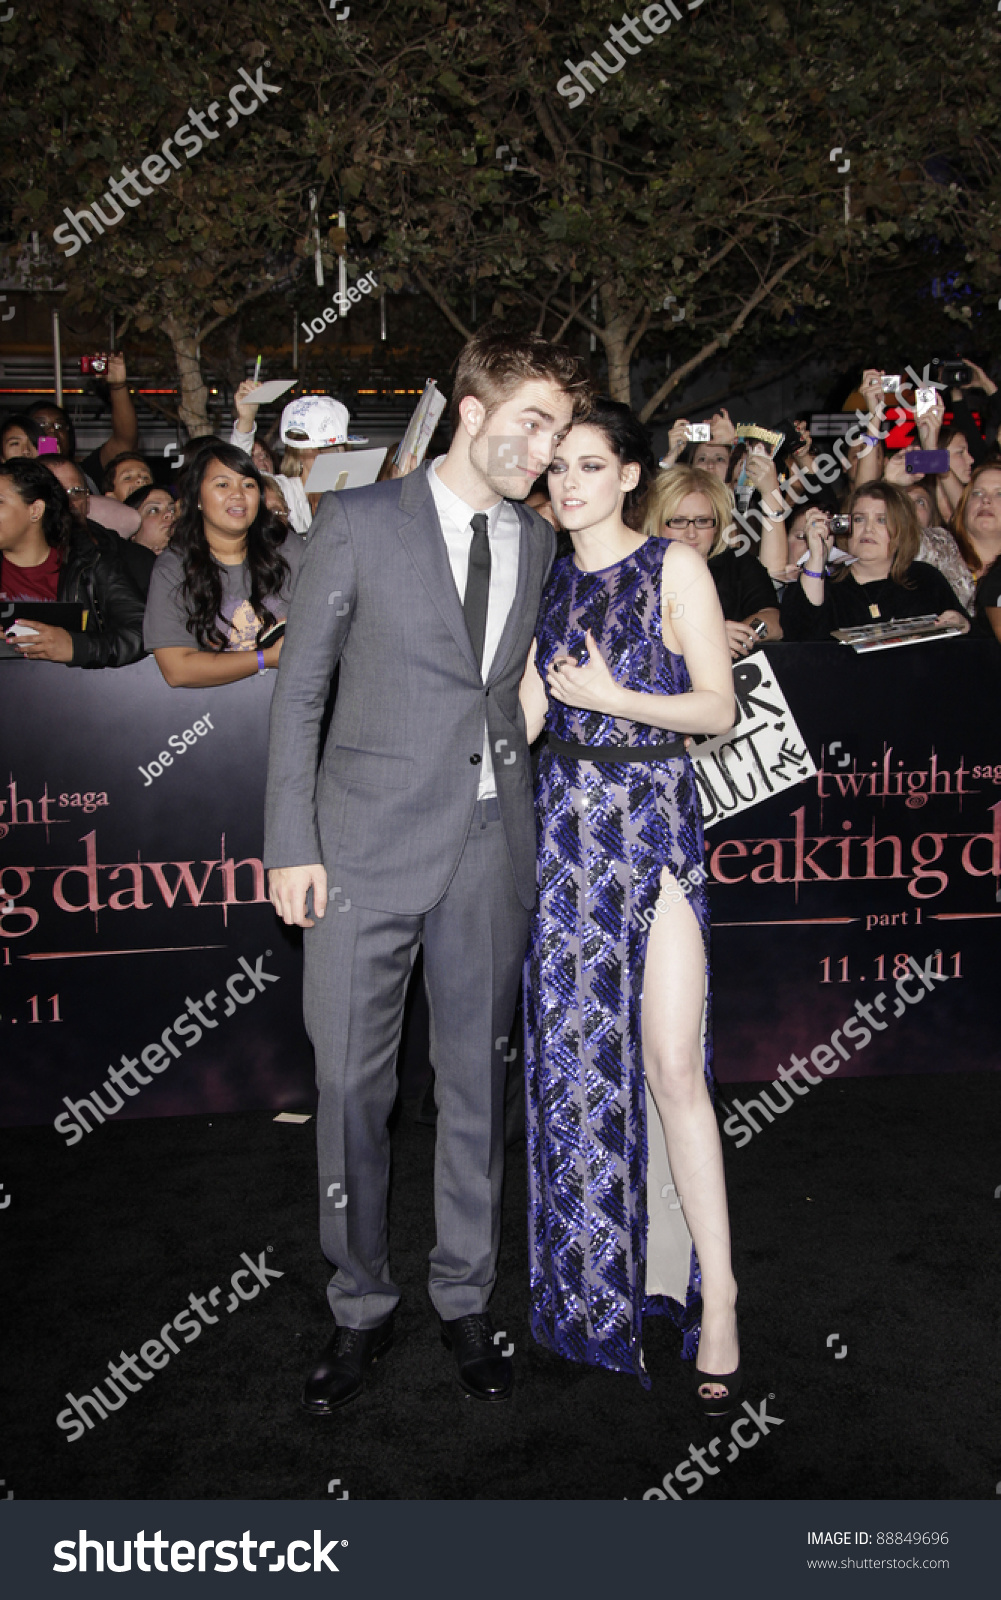 LOS ANGELES - NOV 14: Robert Pattinson, Kristen Stewart at the World  Premiere of